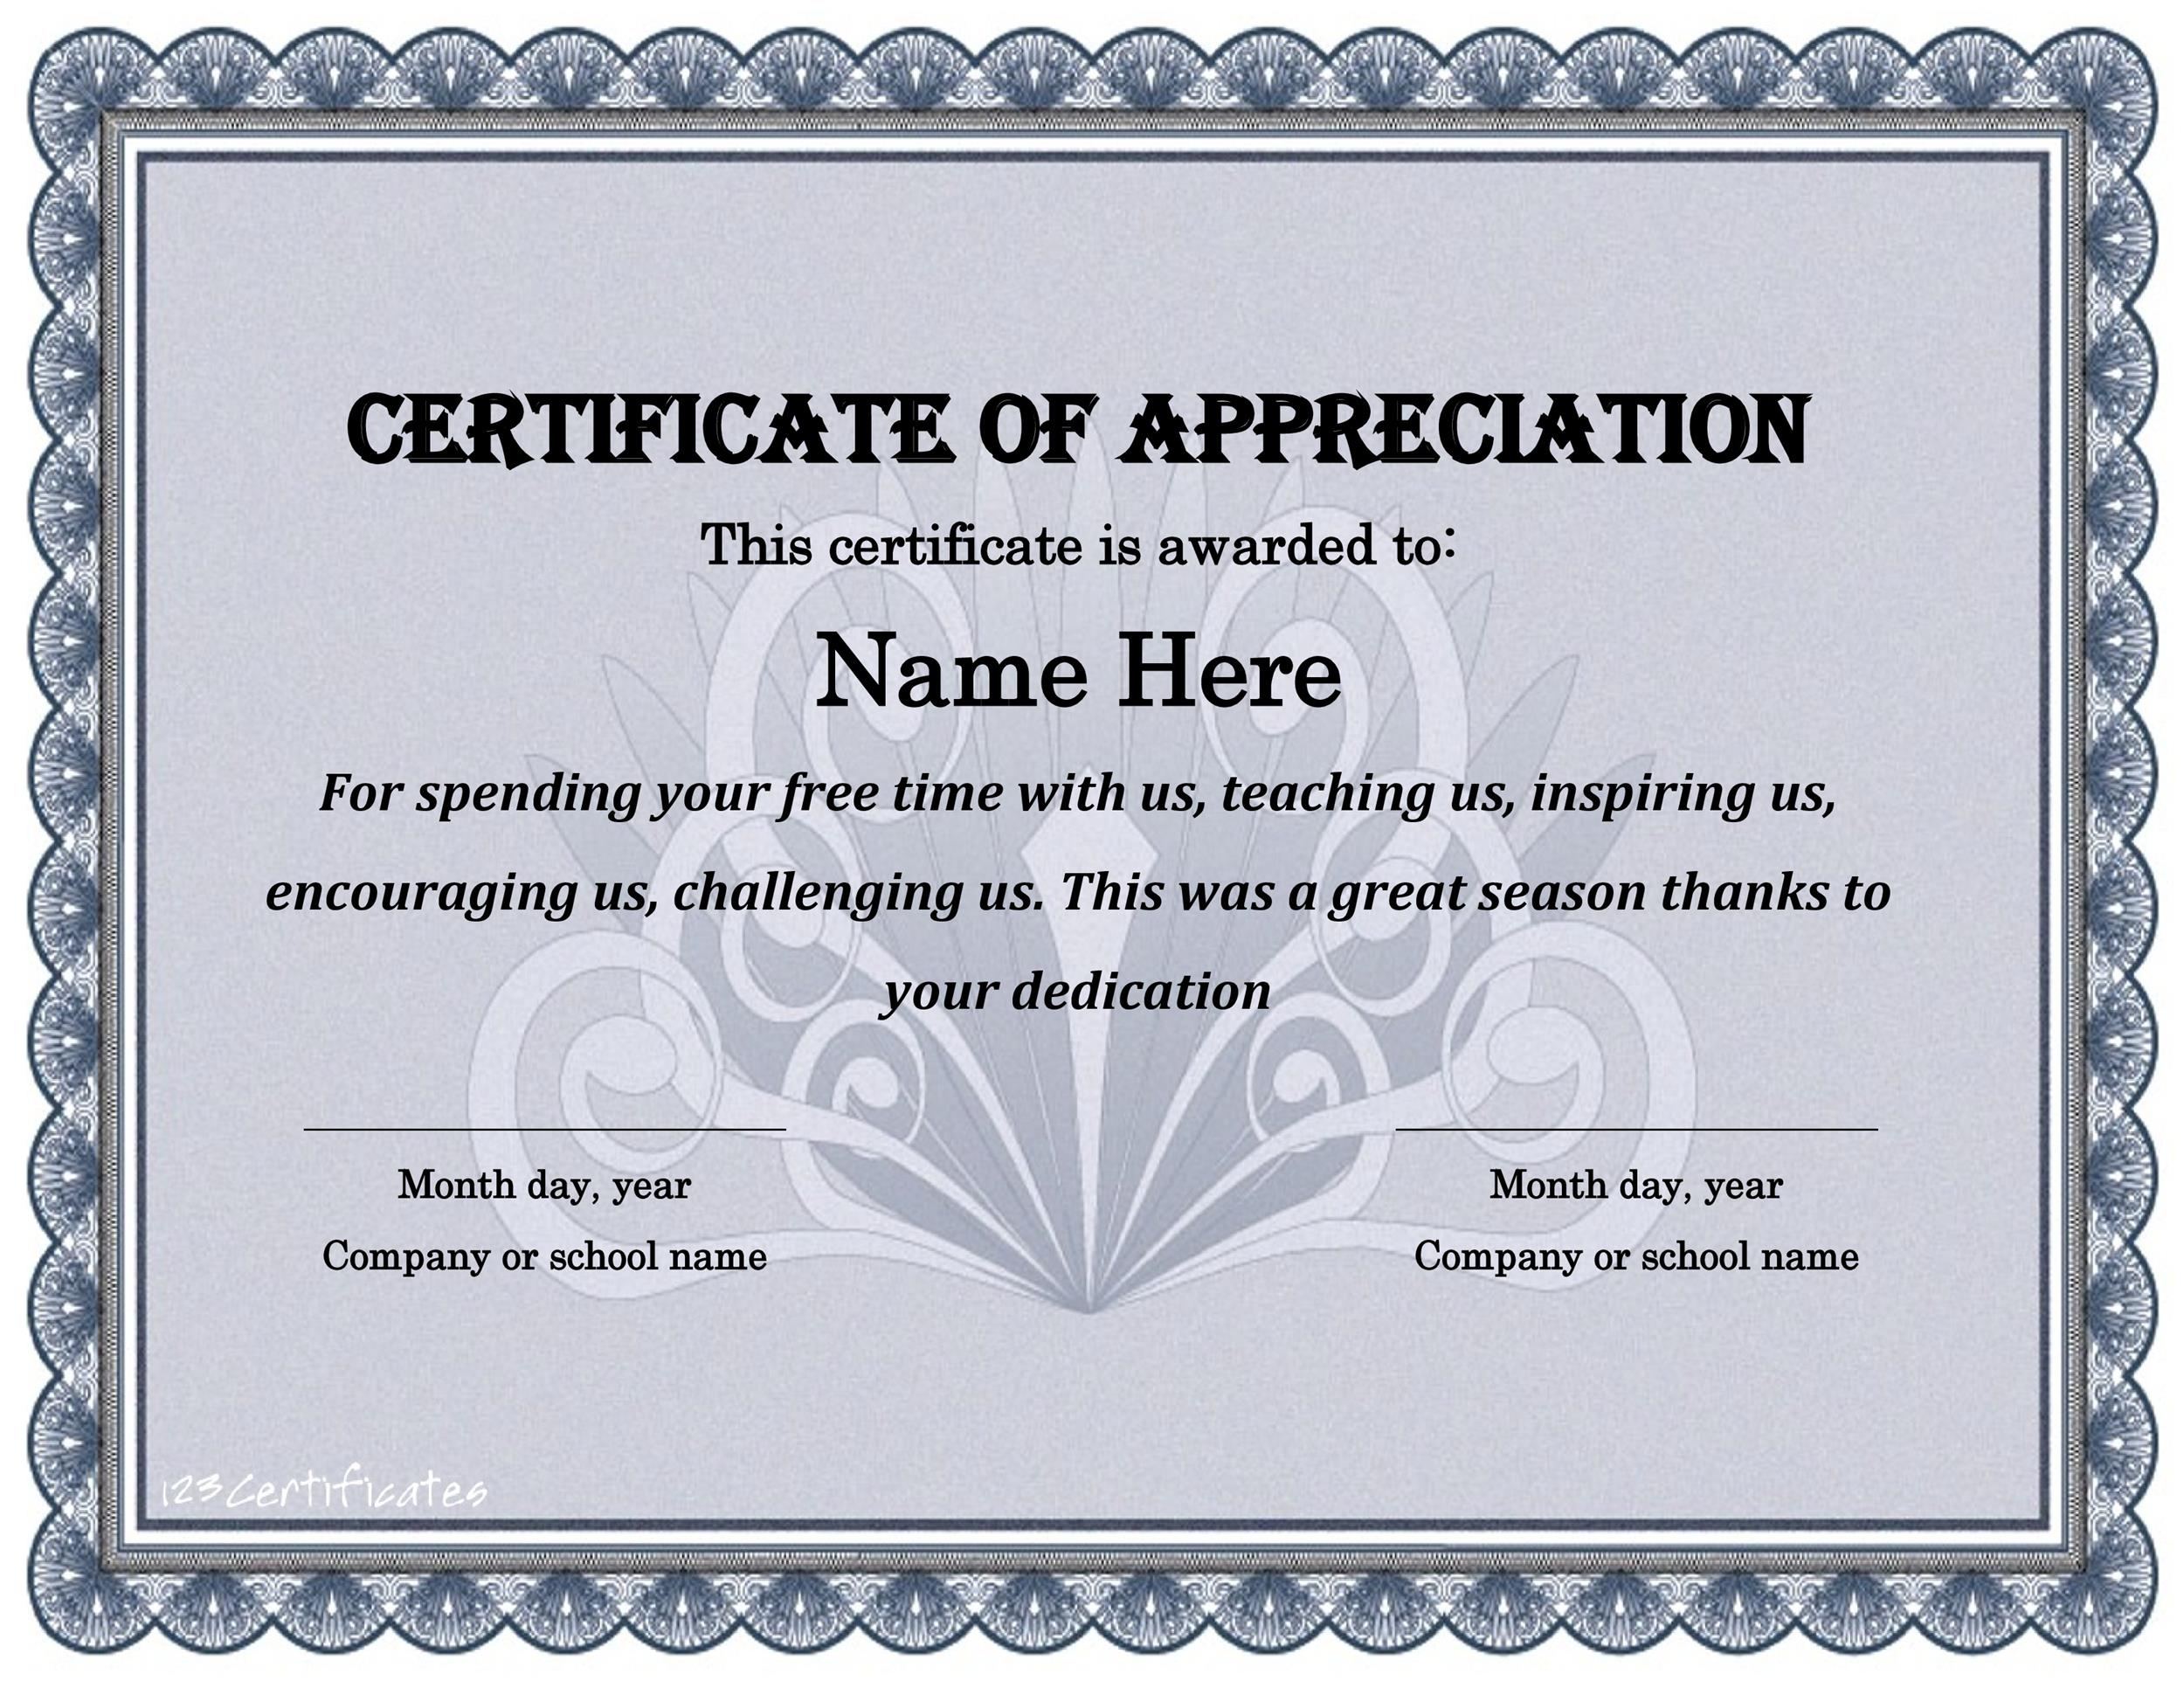 30 free certificate of appreciation templates and letters printable certificate of appreciation 21 yadclub Images